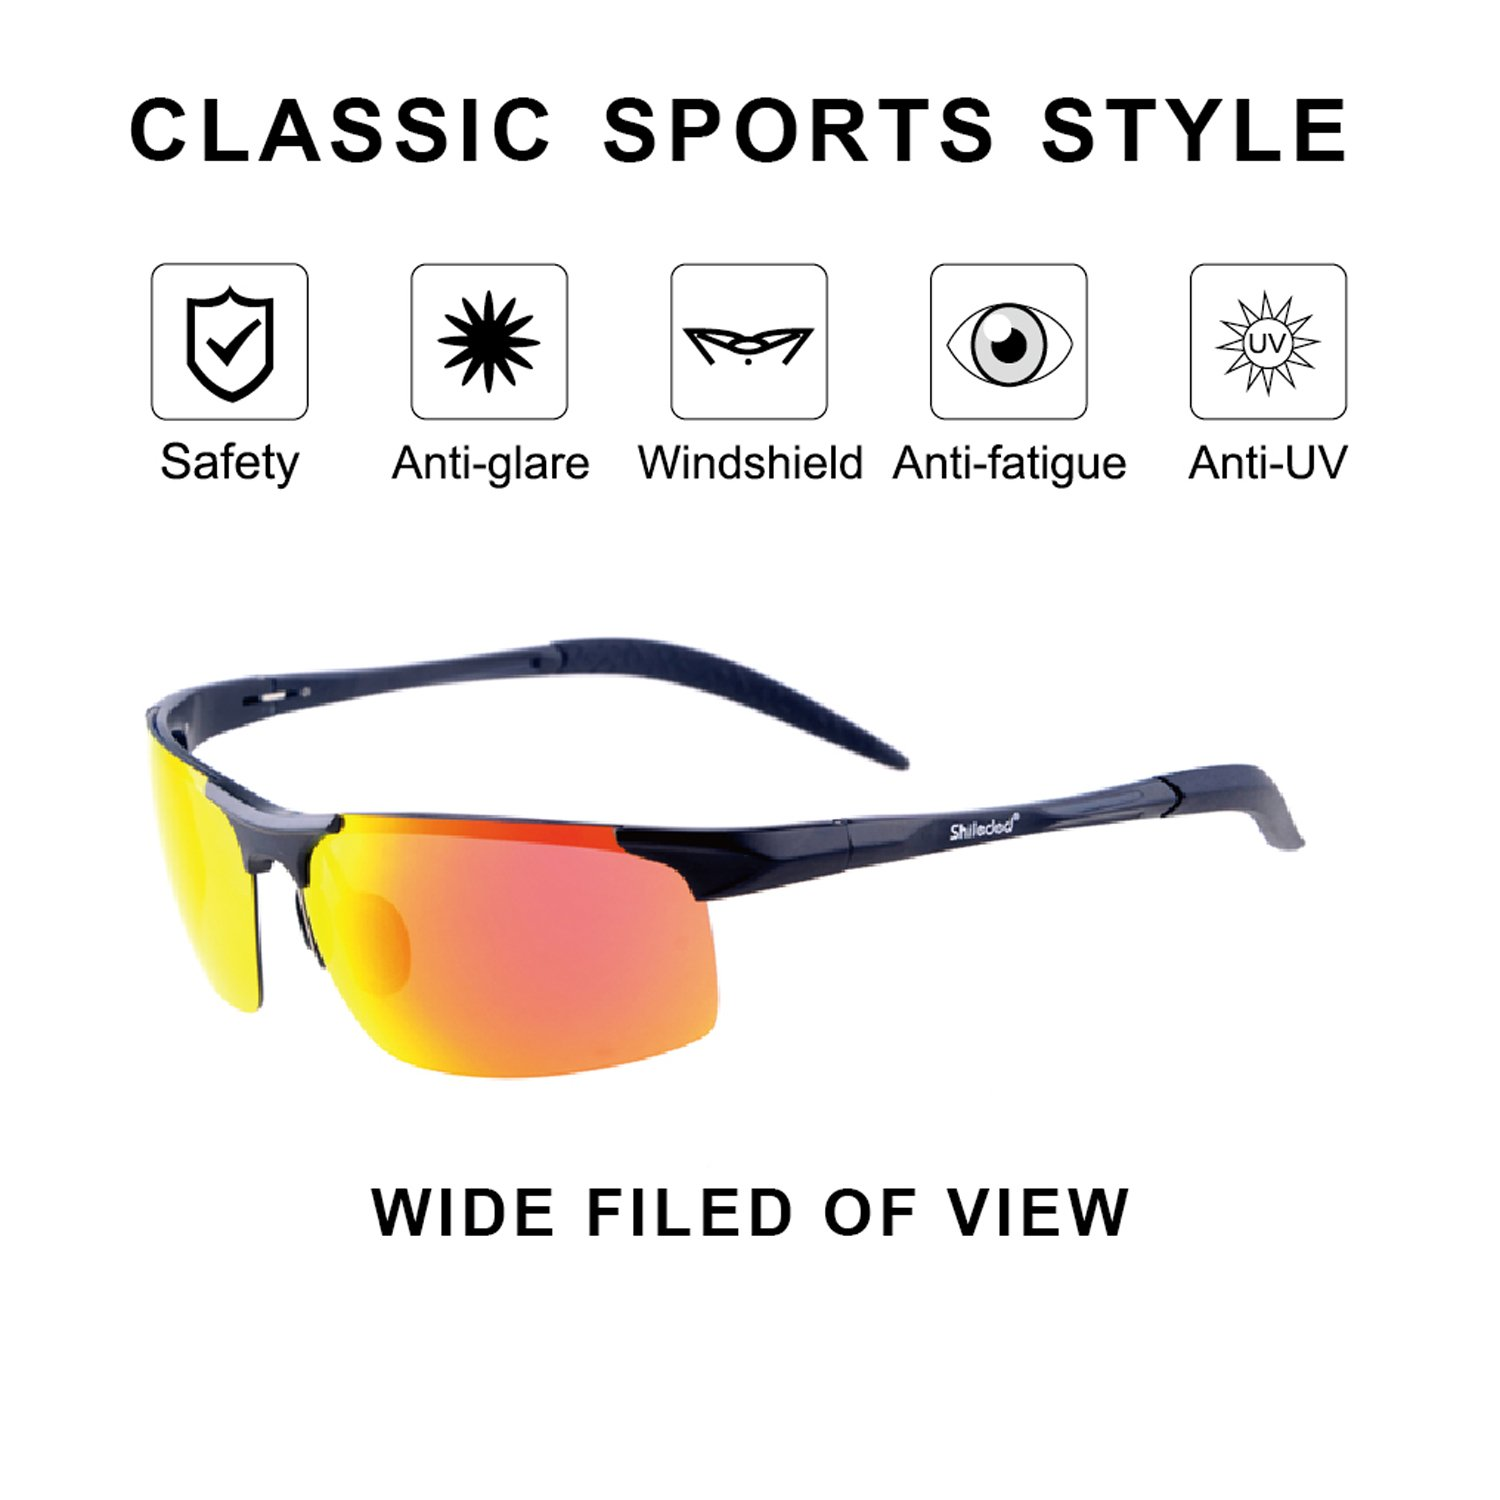 Sxacntg Cycling Glasses,Fishing Golf Glasses Polarized UV Protection Sunglasses,Sports Sunglasses High Grade for Outdoors Durable Frame for Men/Women/Boy/Girl by Sxacntg (Image #4)